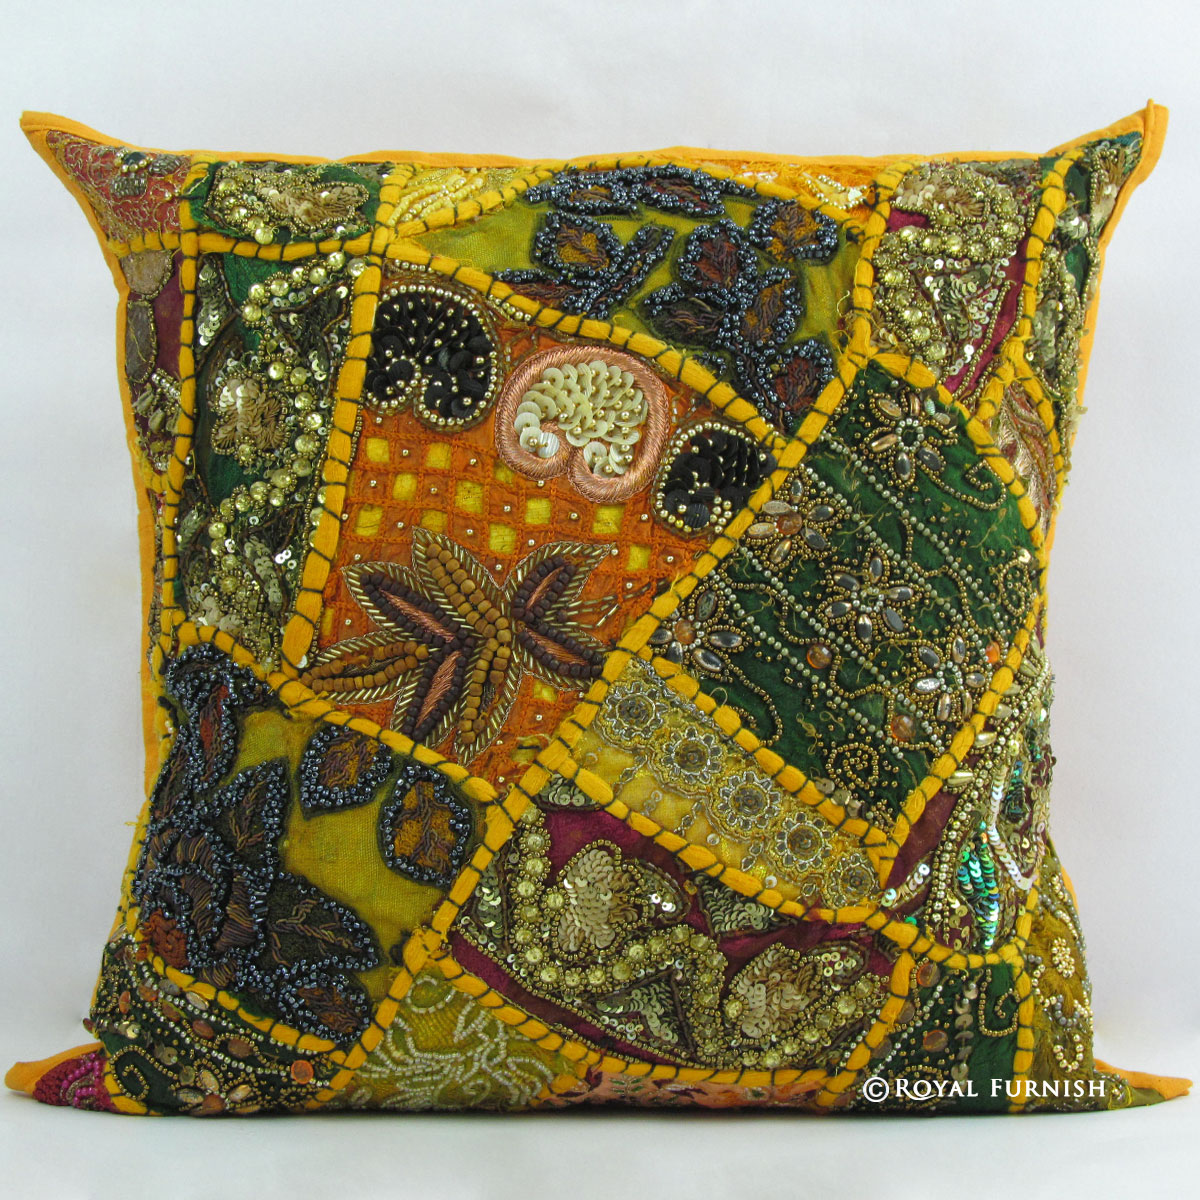 Decorative Pillows With Beads : Yellow Indian Beaded Embroidered Patchwork Accent Throw Pillow Case Sham - RoyalFurnish.com